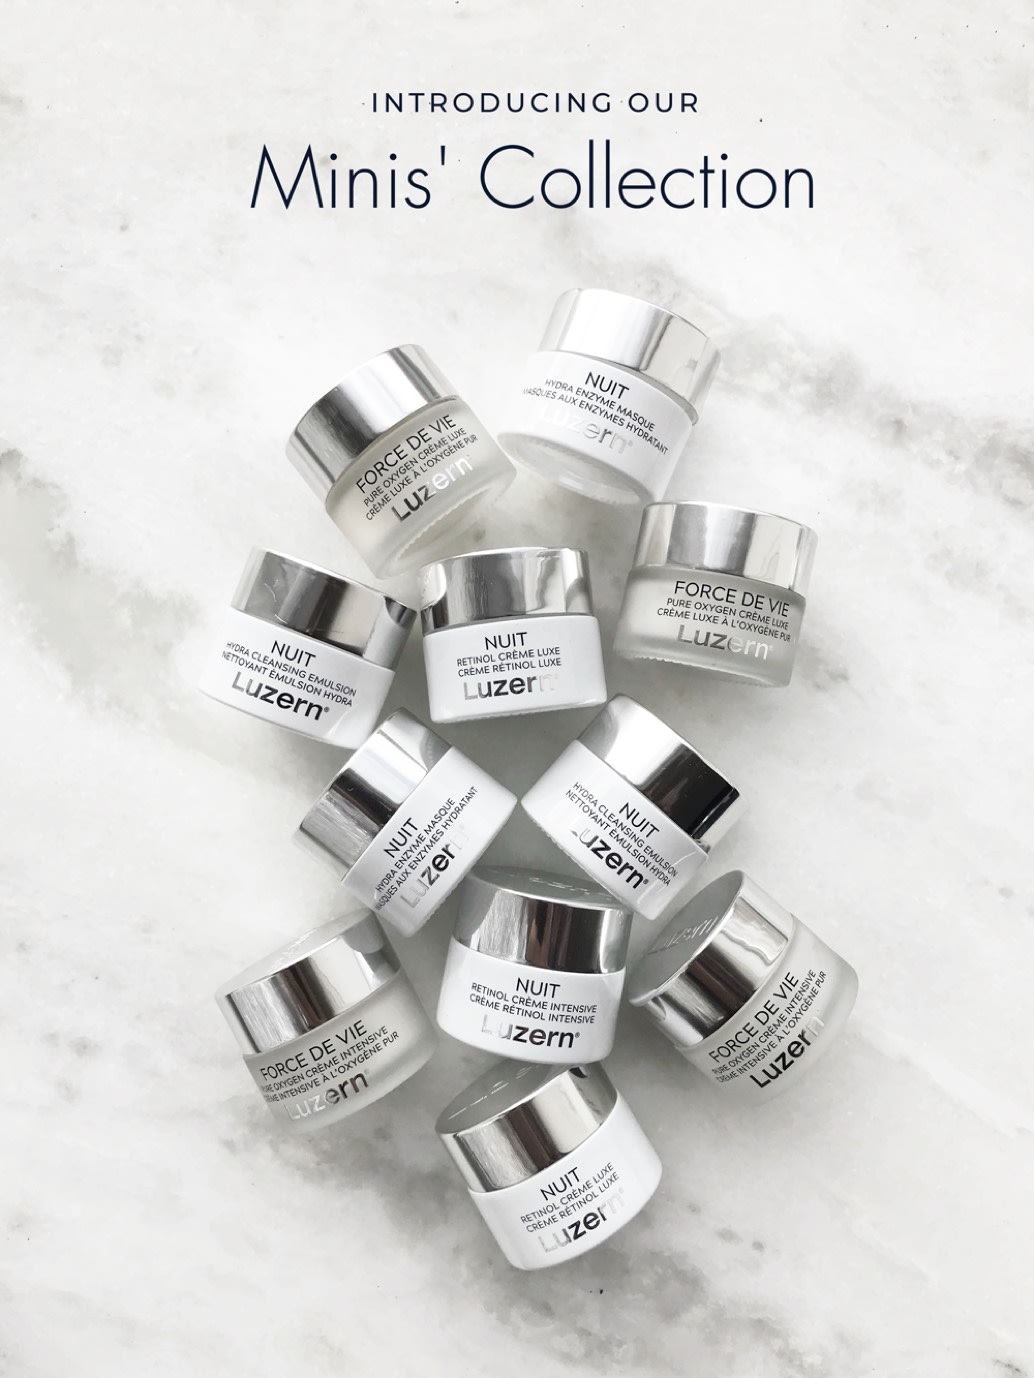 Luzern's new mini collection of best-selling skincare products in smaller, travel-size packaging.